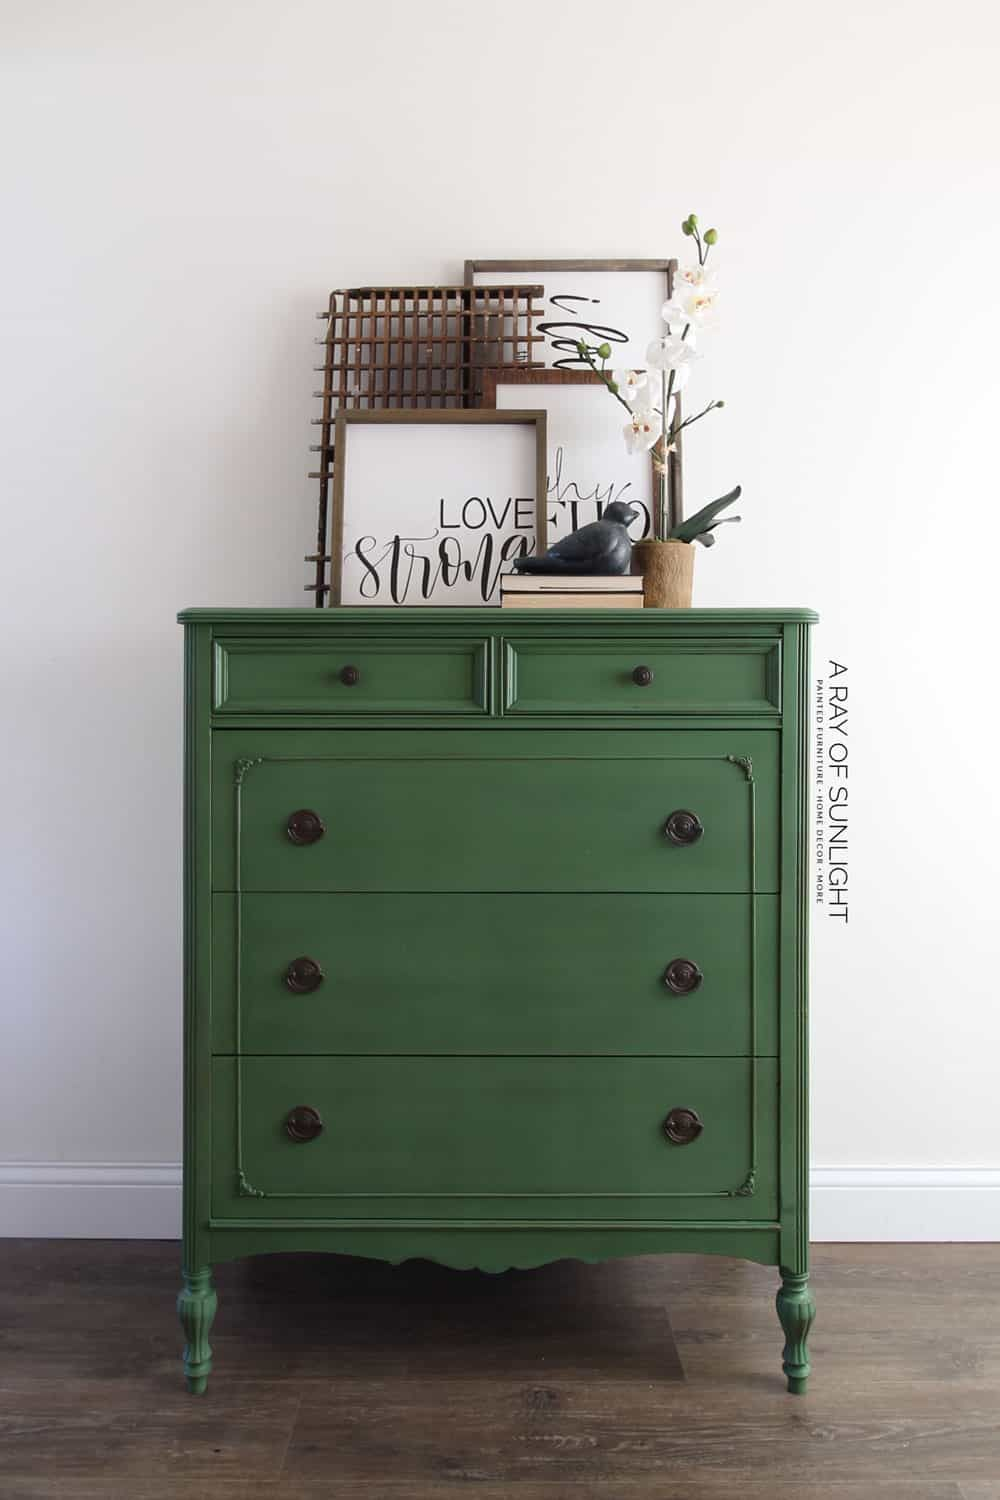 Emerald Green Painted Dresser How To Paint With Milk Paint Green Painted Furniture Green Bedroom Furniture Painted Dresser [ 1500 x 1000 Pixel ]